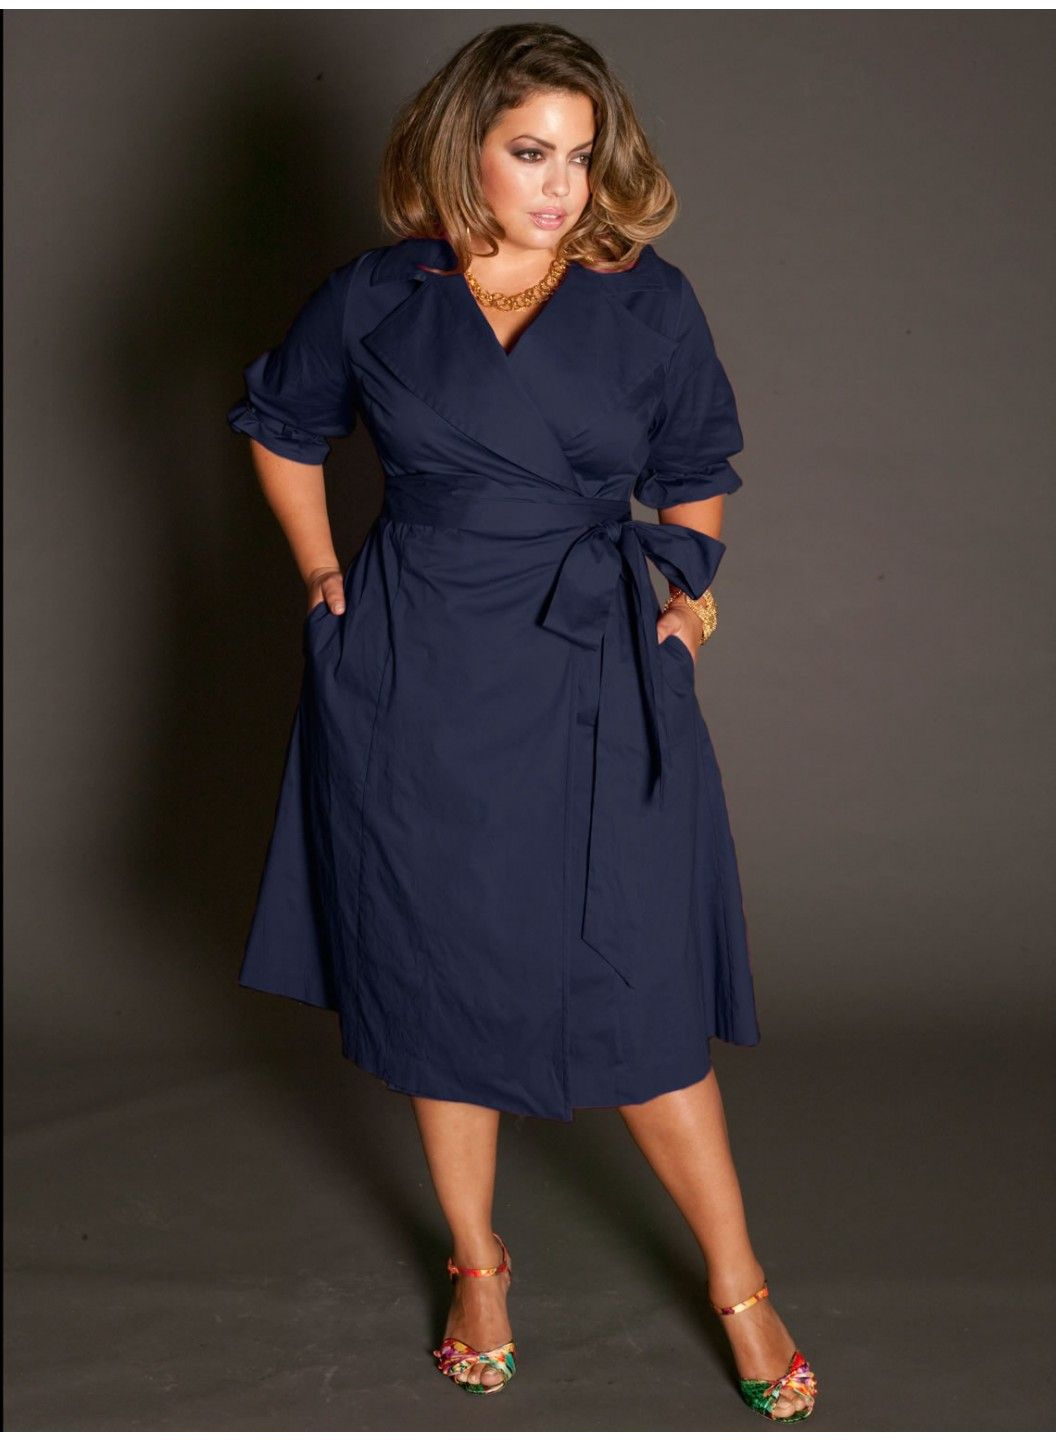 Plus size dress $140